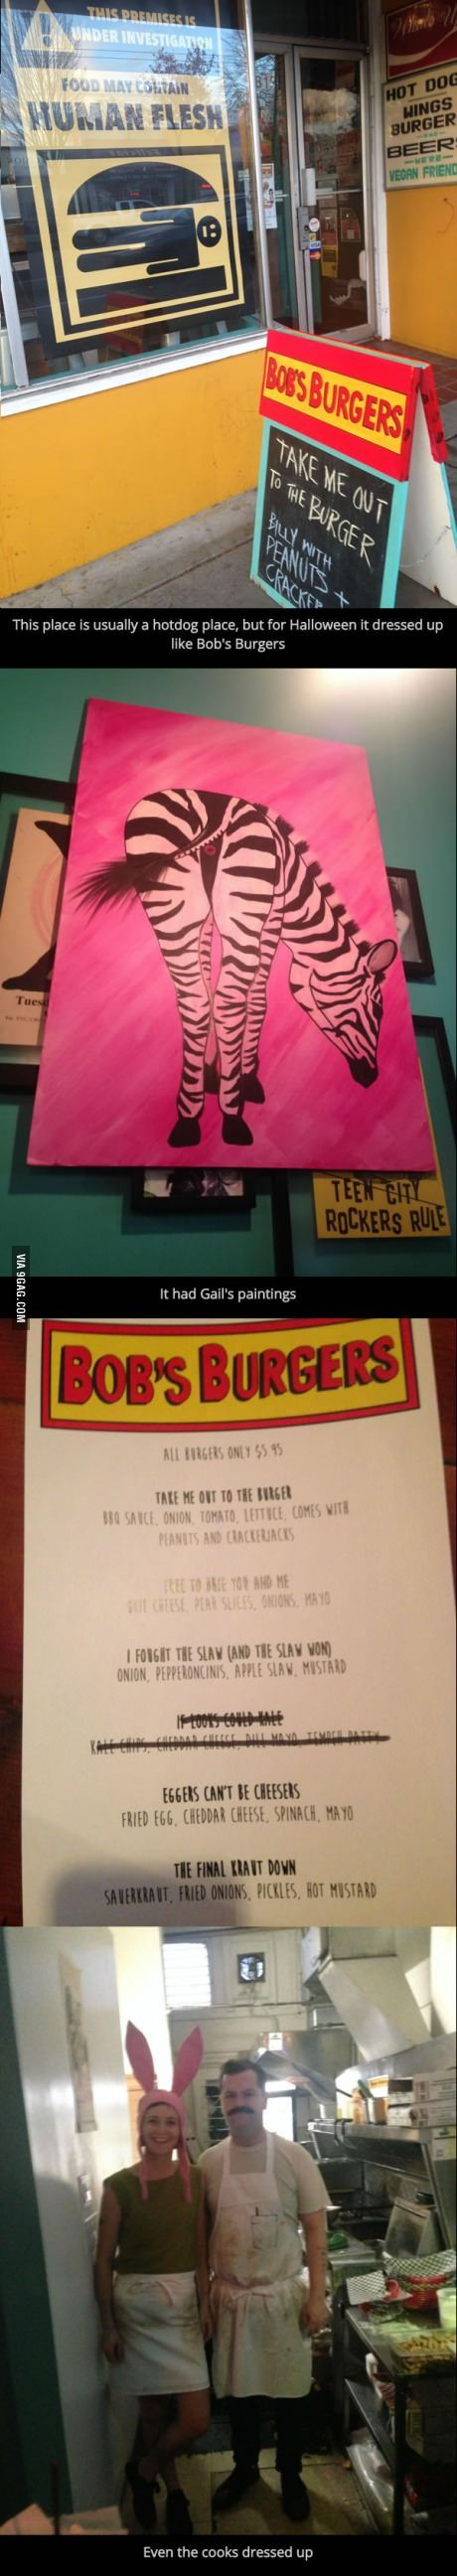 This hotdog place dressed up like Bob's Burgers for Halloween